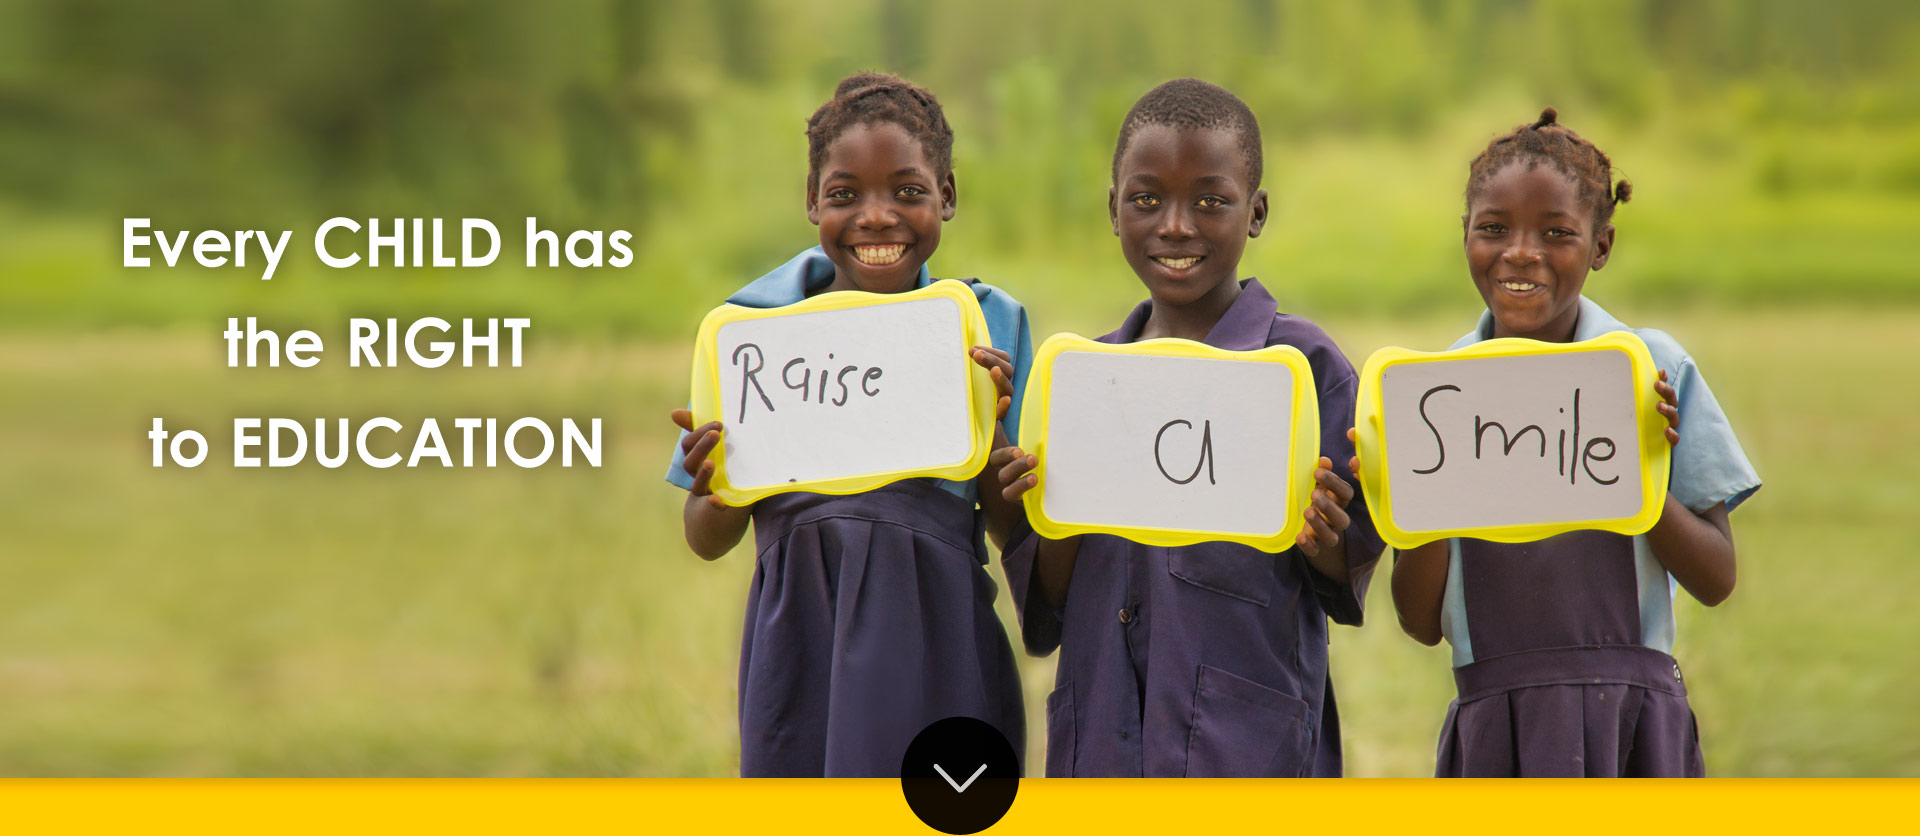 Raise a Smile: Every CHILD has the RIGHT to EDUCATION